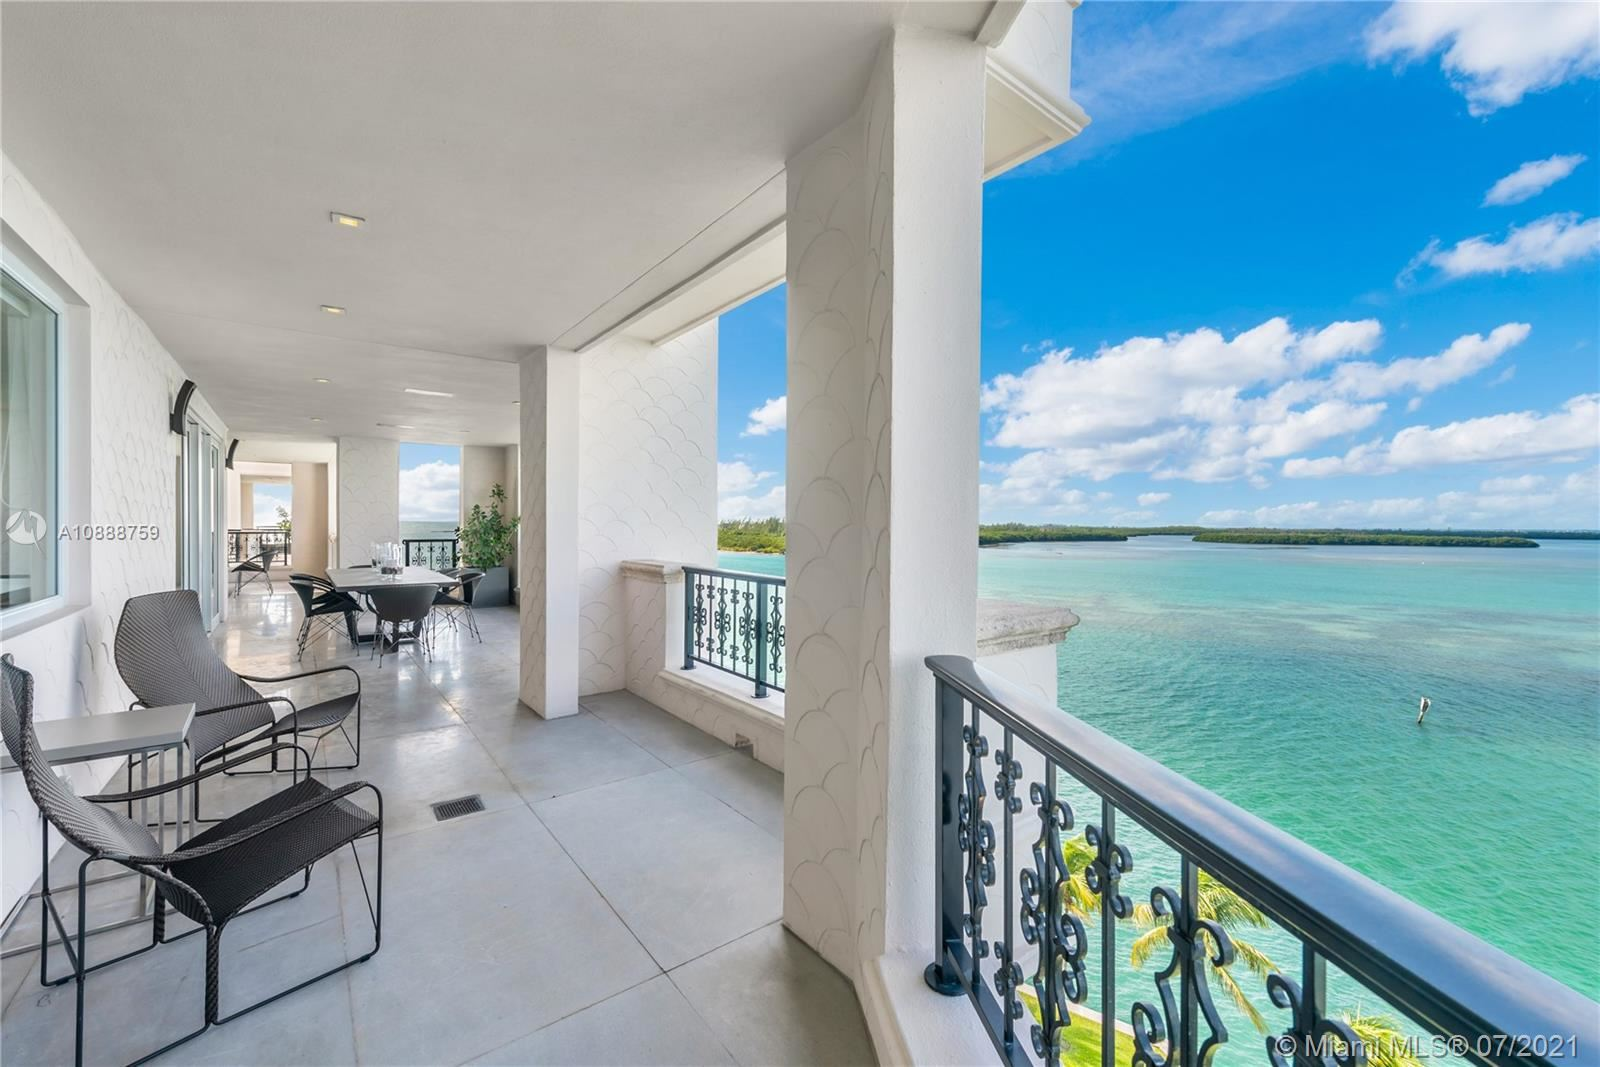 Photo 57 of Listing MLS a10888759 in 5282 Fisher Island Dr #5282 Miami FL 33109